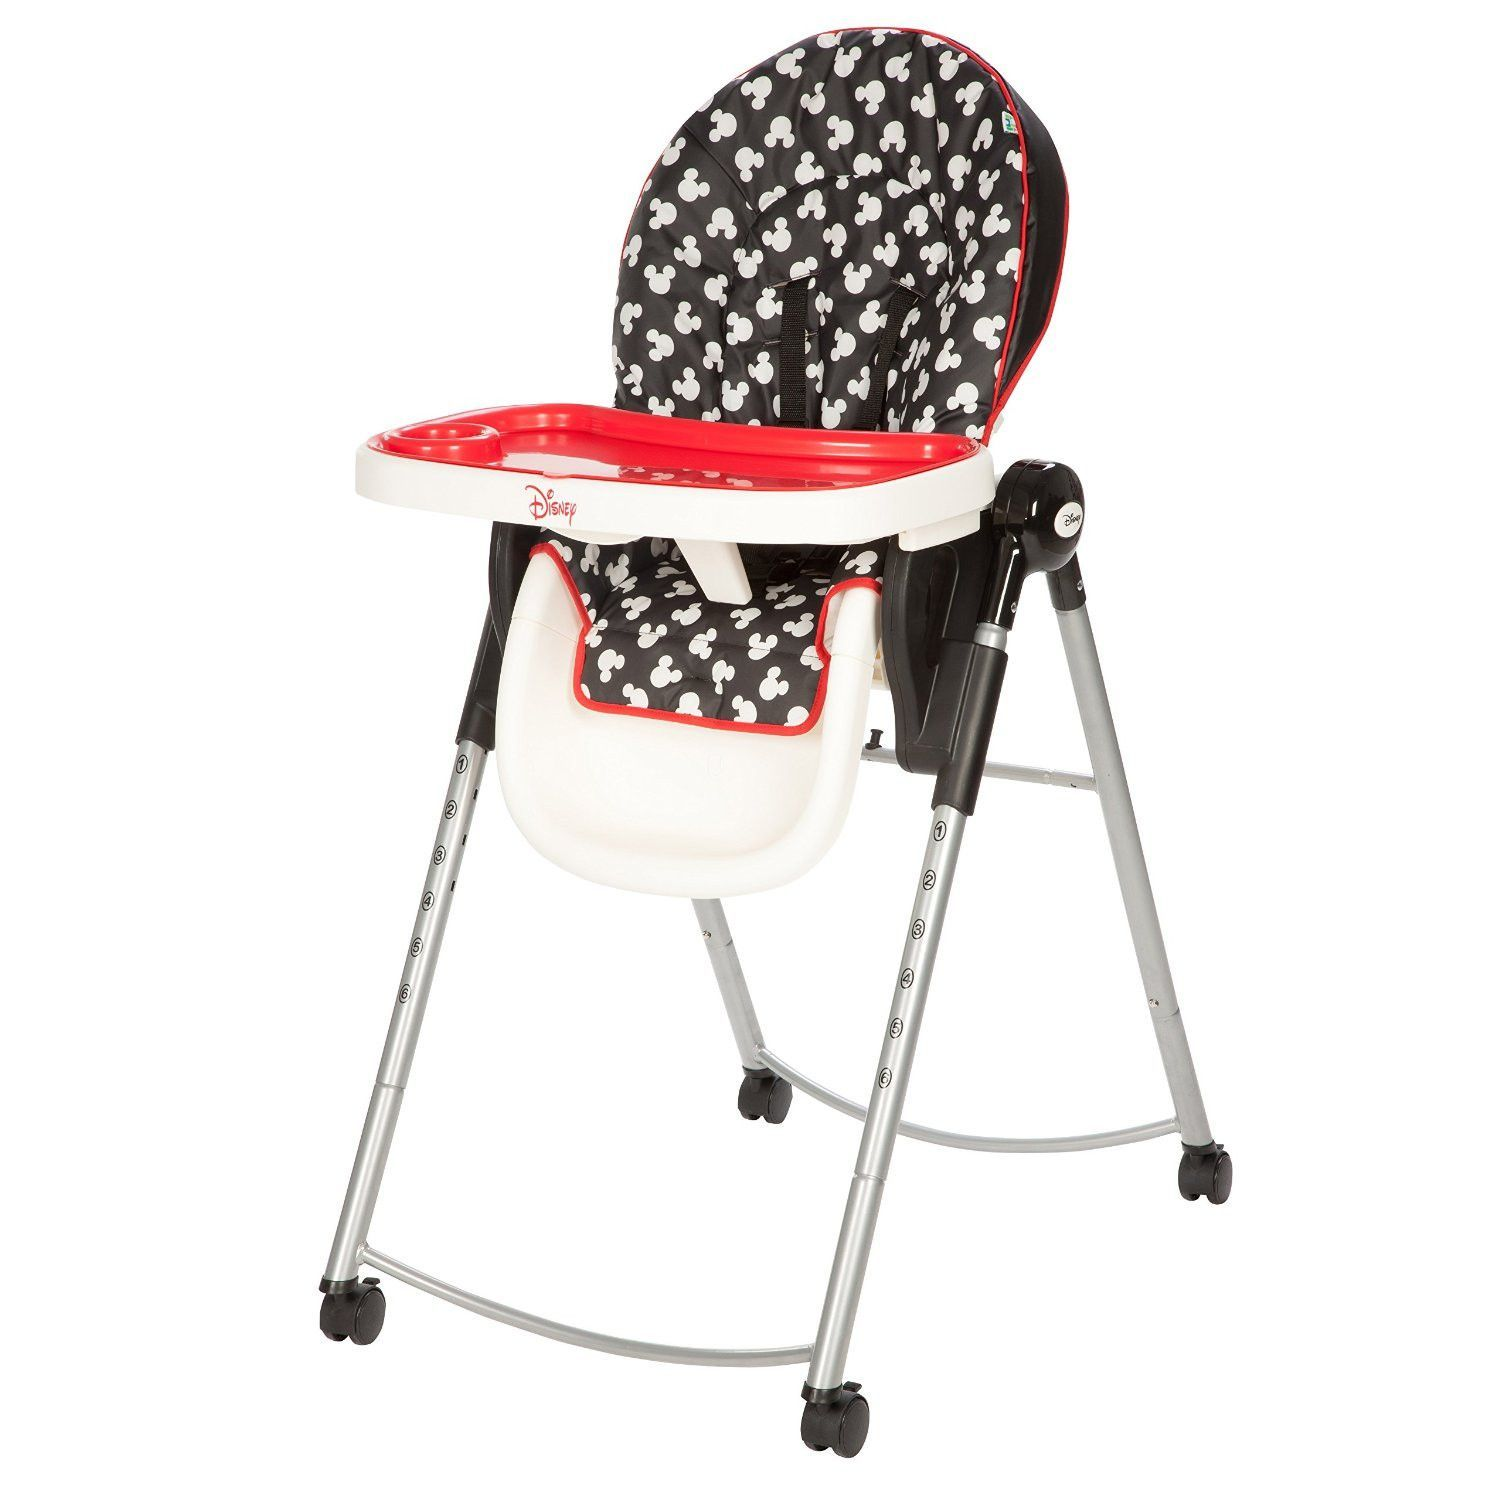 Disney Baby Adjustable High Chair Mickey Silhouette HC230CLV